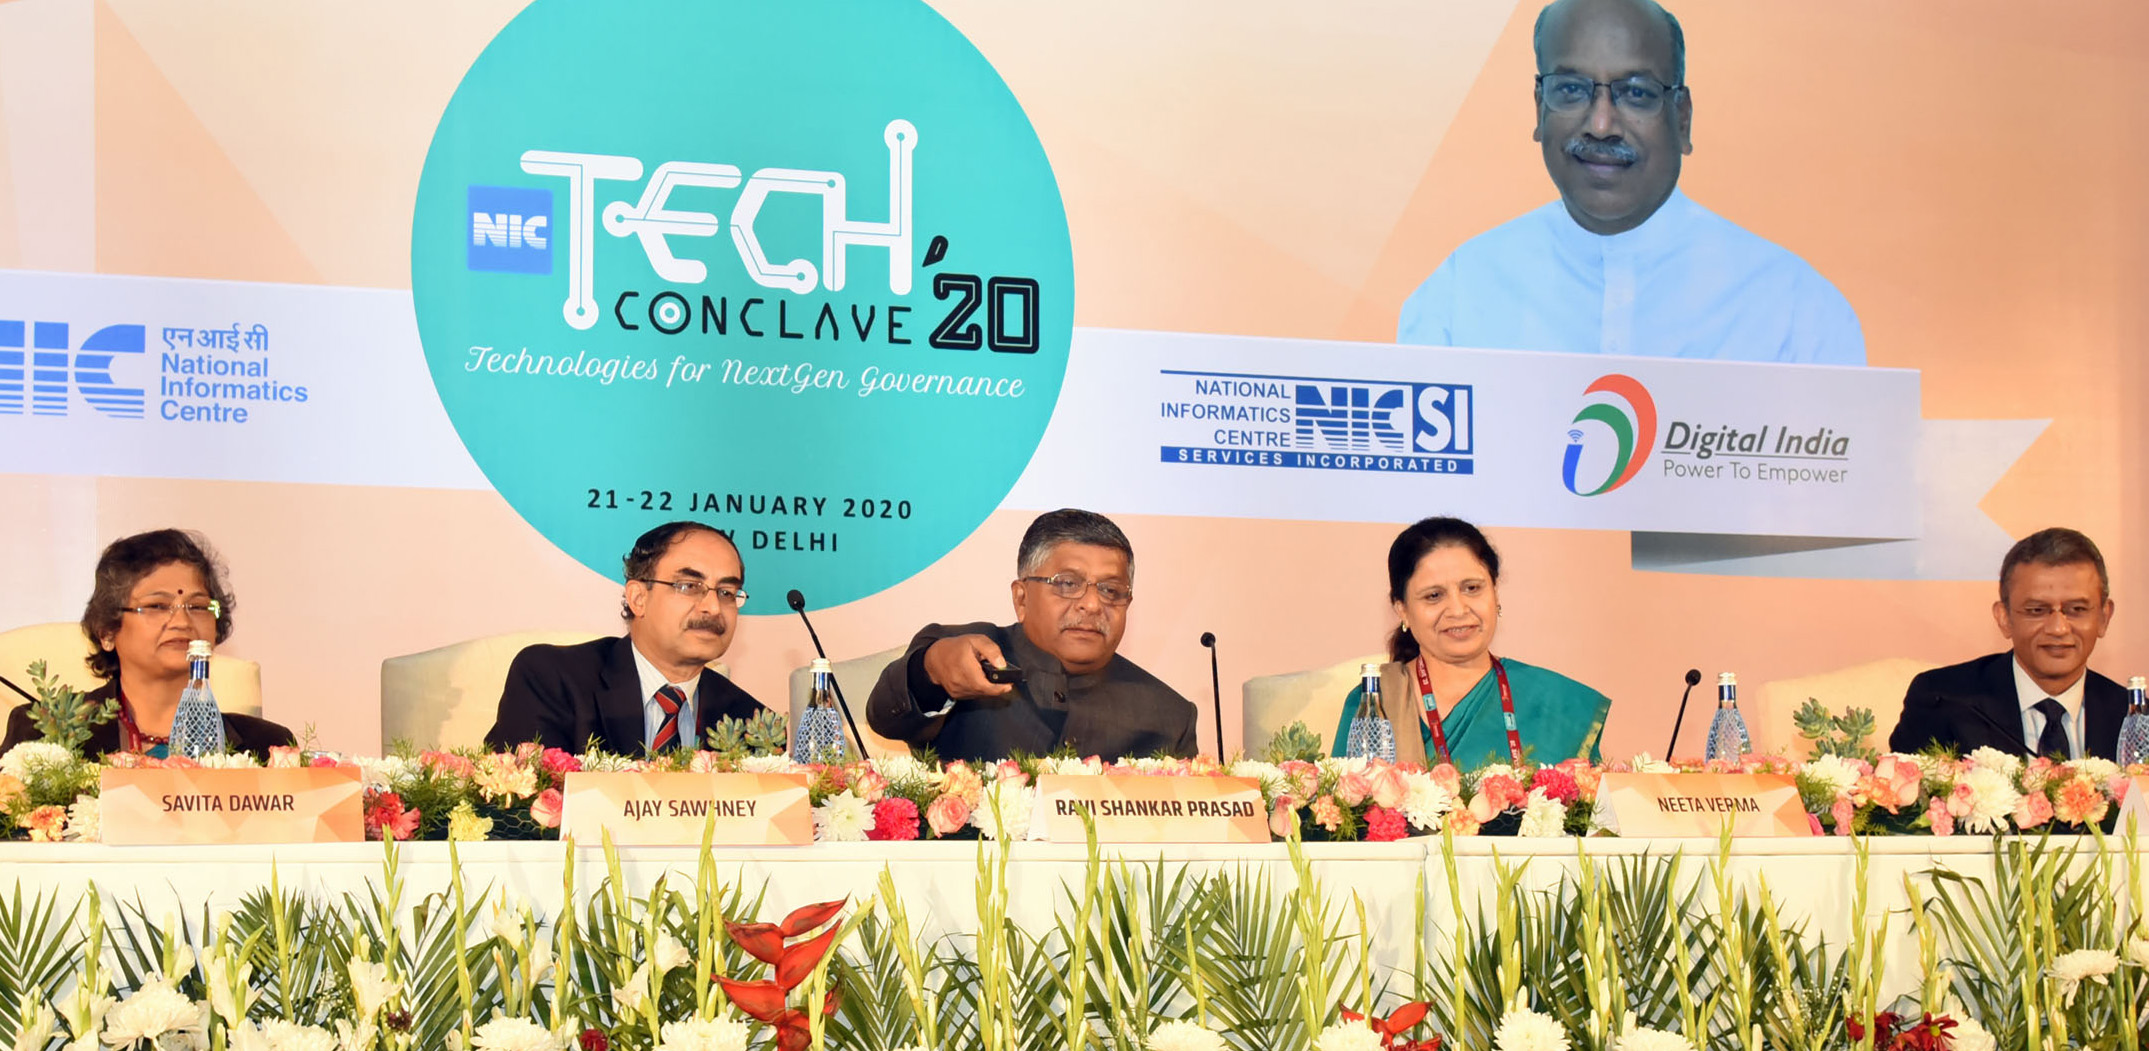 The Union Minister for Law & Justice, Communications and Electronics & Information Technology, Shri Ravi Shankar Prasad at the inauguration of the 'NIC Tech Conclave 2020' with the theme - Technologies for NextGen Governance, in New Delhi on January 21, 2020. 	The Secretary, Ministry of Electronics & Information Technology, Shri Ajay Prakash Sawhney and other dignitaries are also seen.